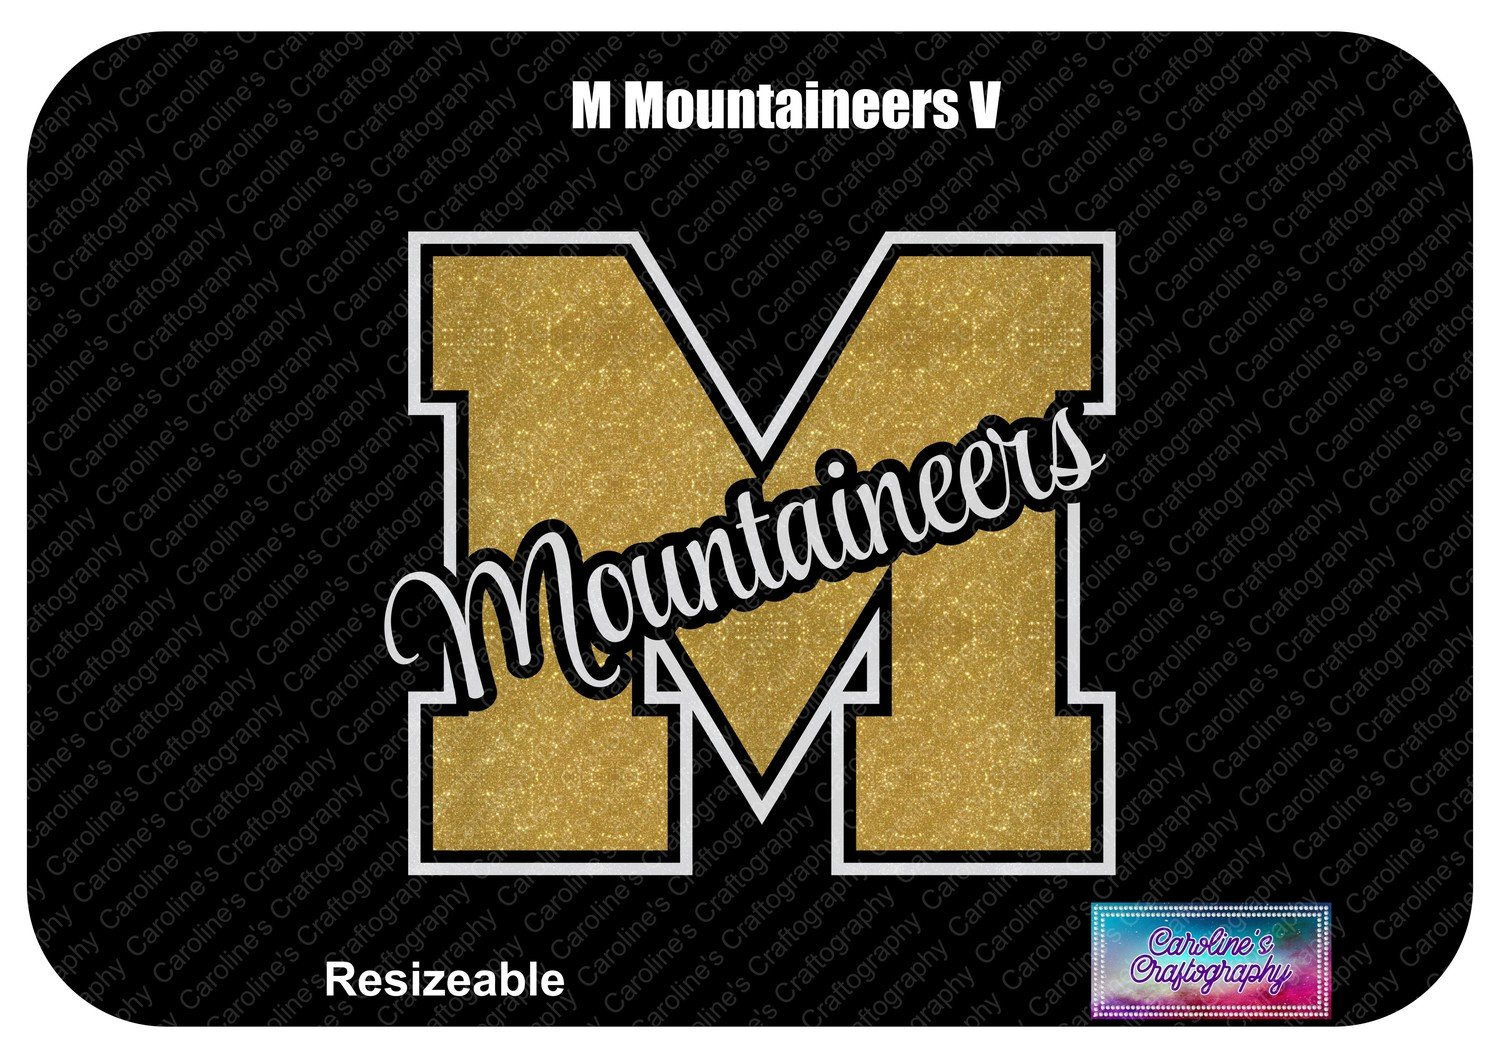 M Mountaineers Vinyl